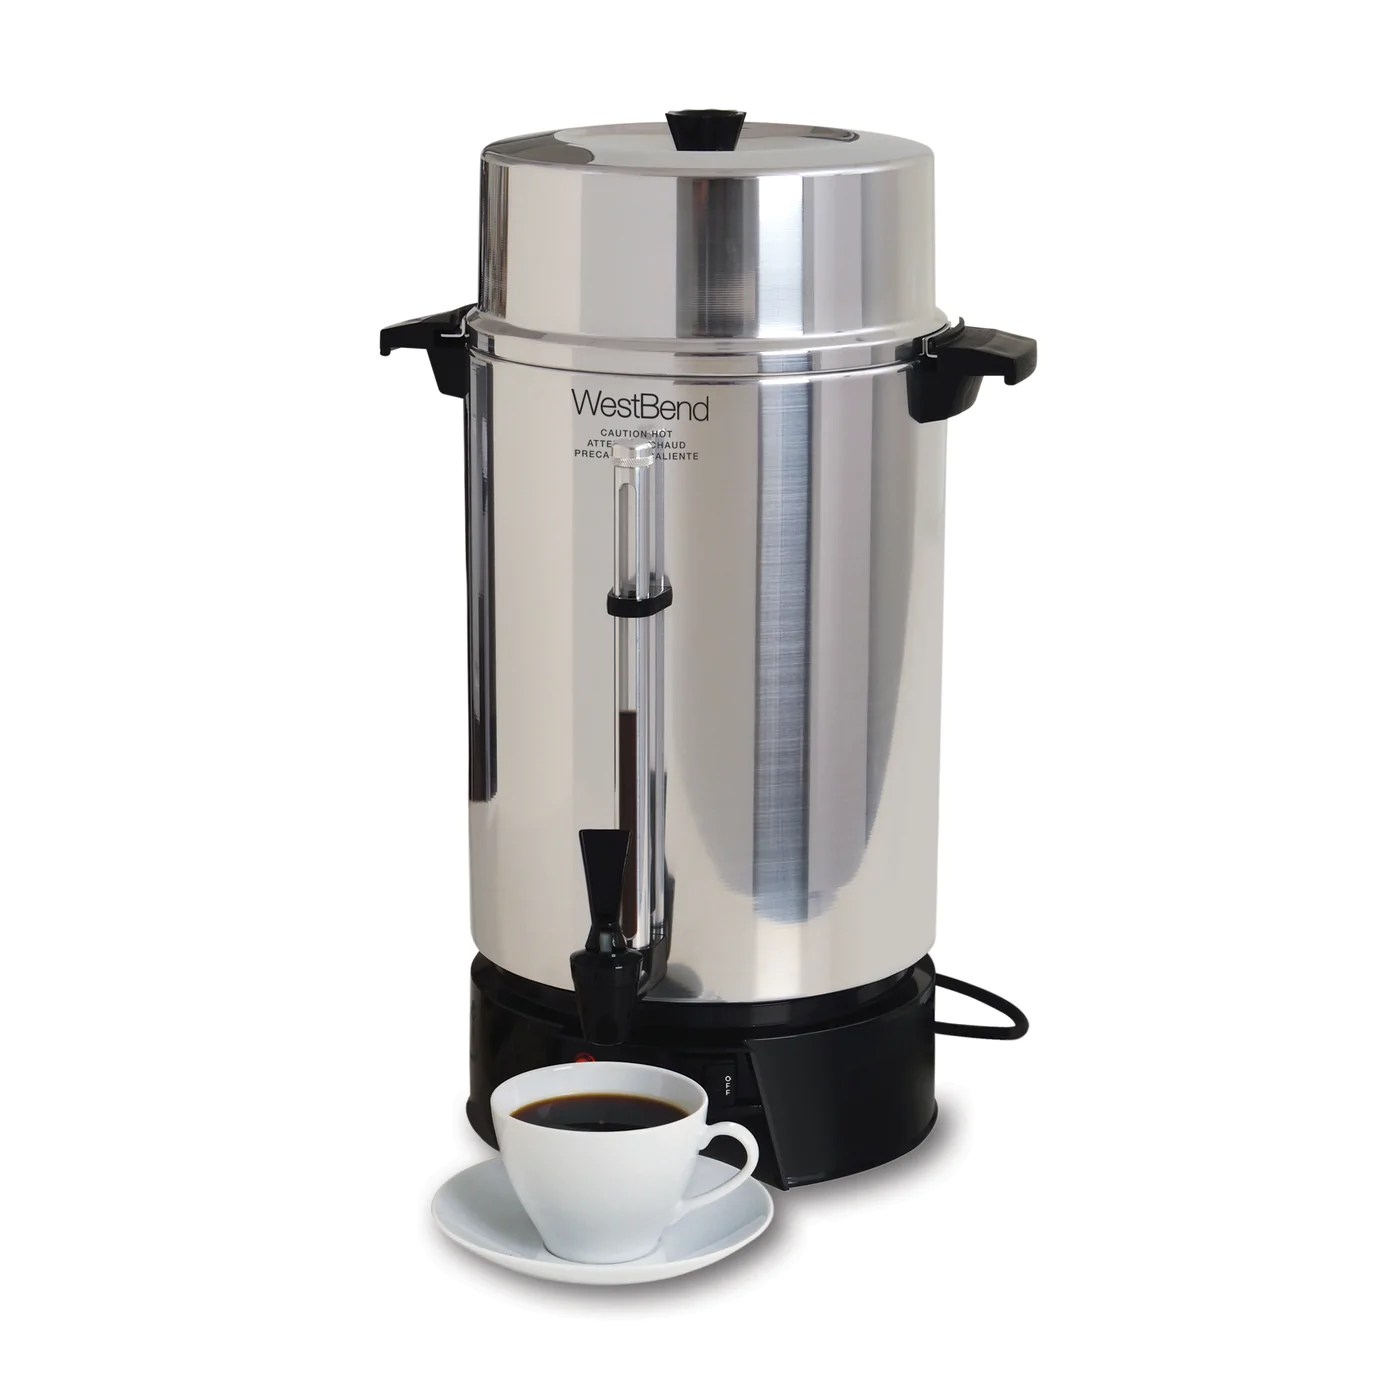 33600 - 100 Cup Commercial Urn Coffee Makers Beverages West Bend